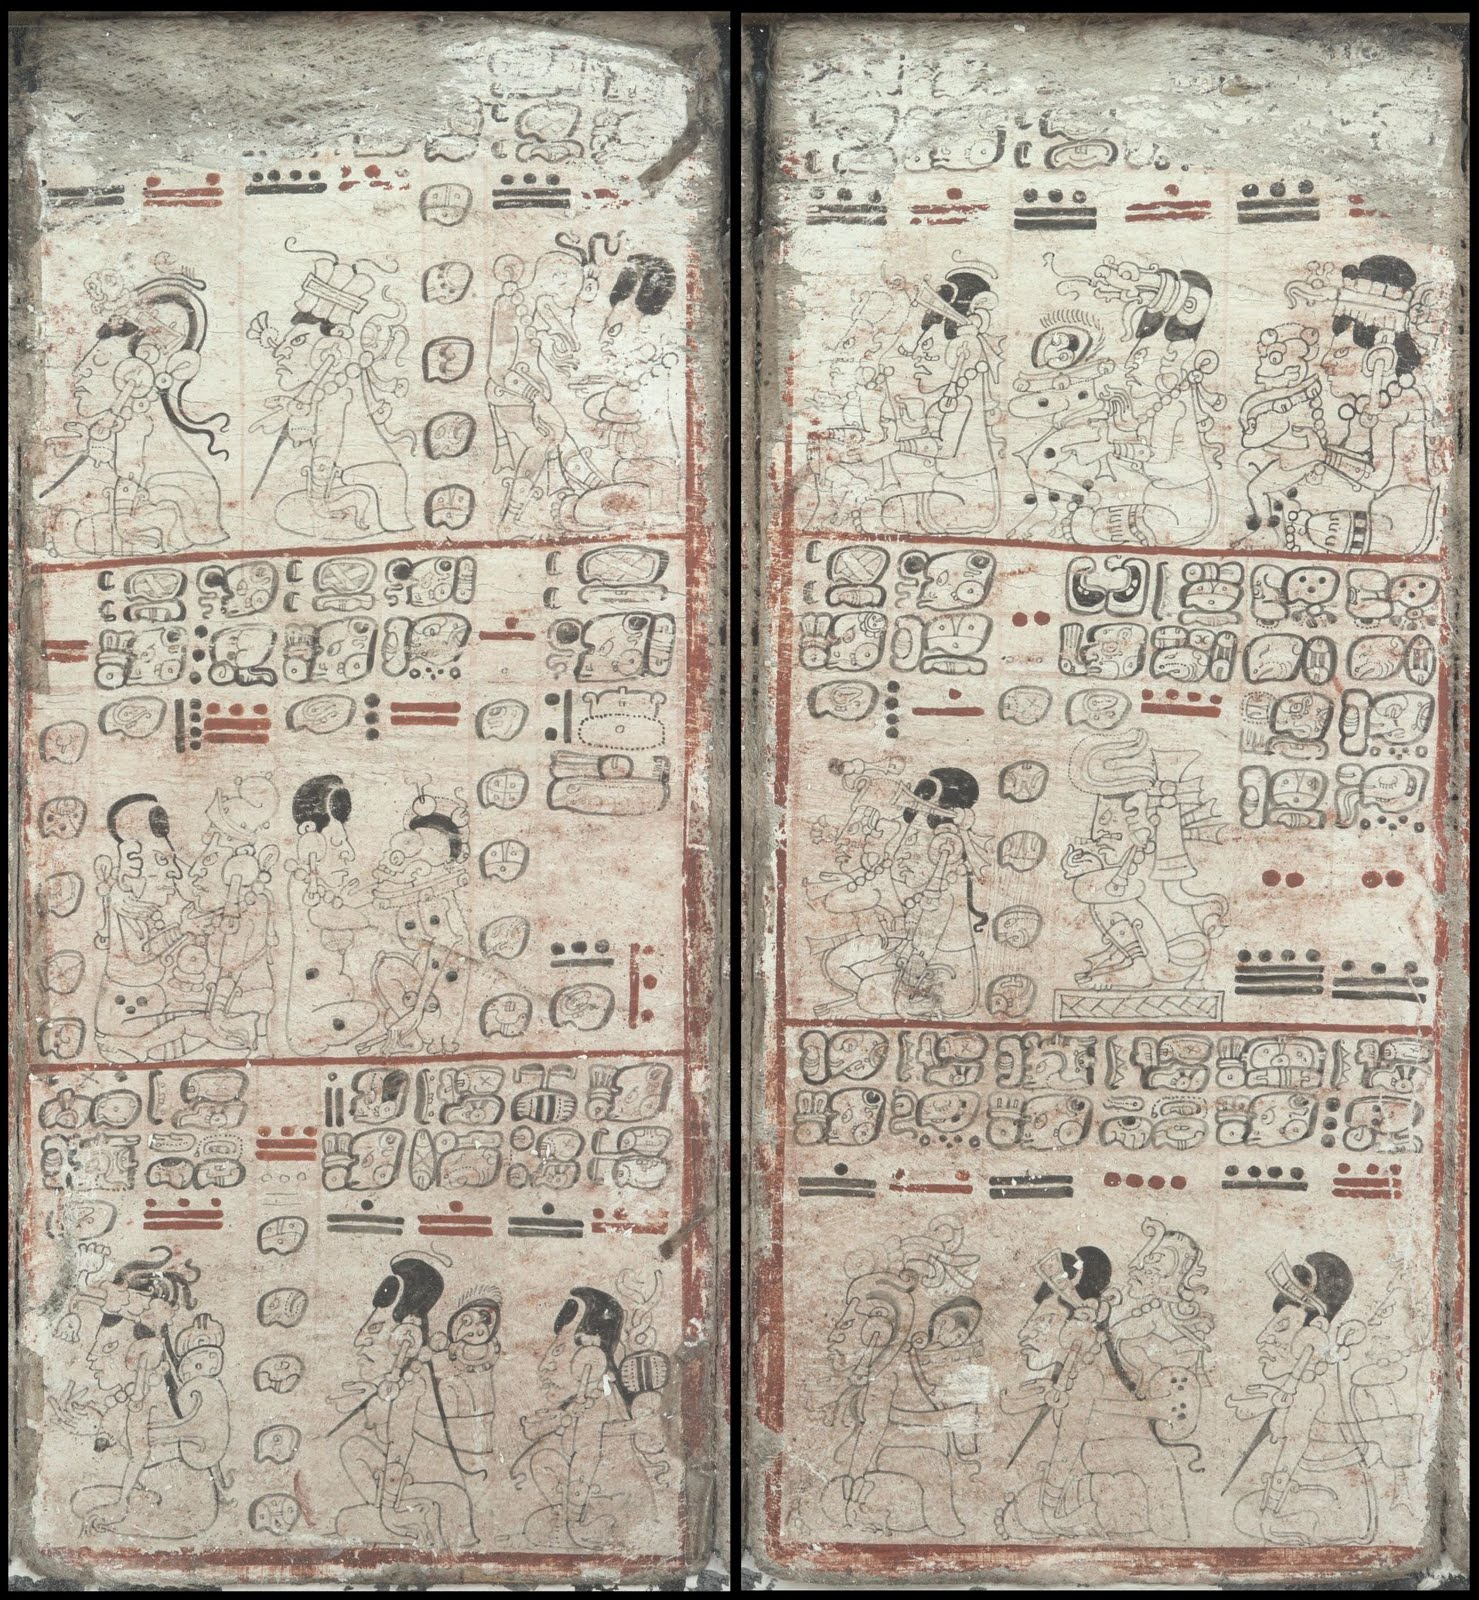 Mayan codex Dresden - The Moon Goddess; illness and birth